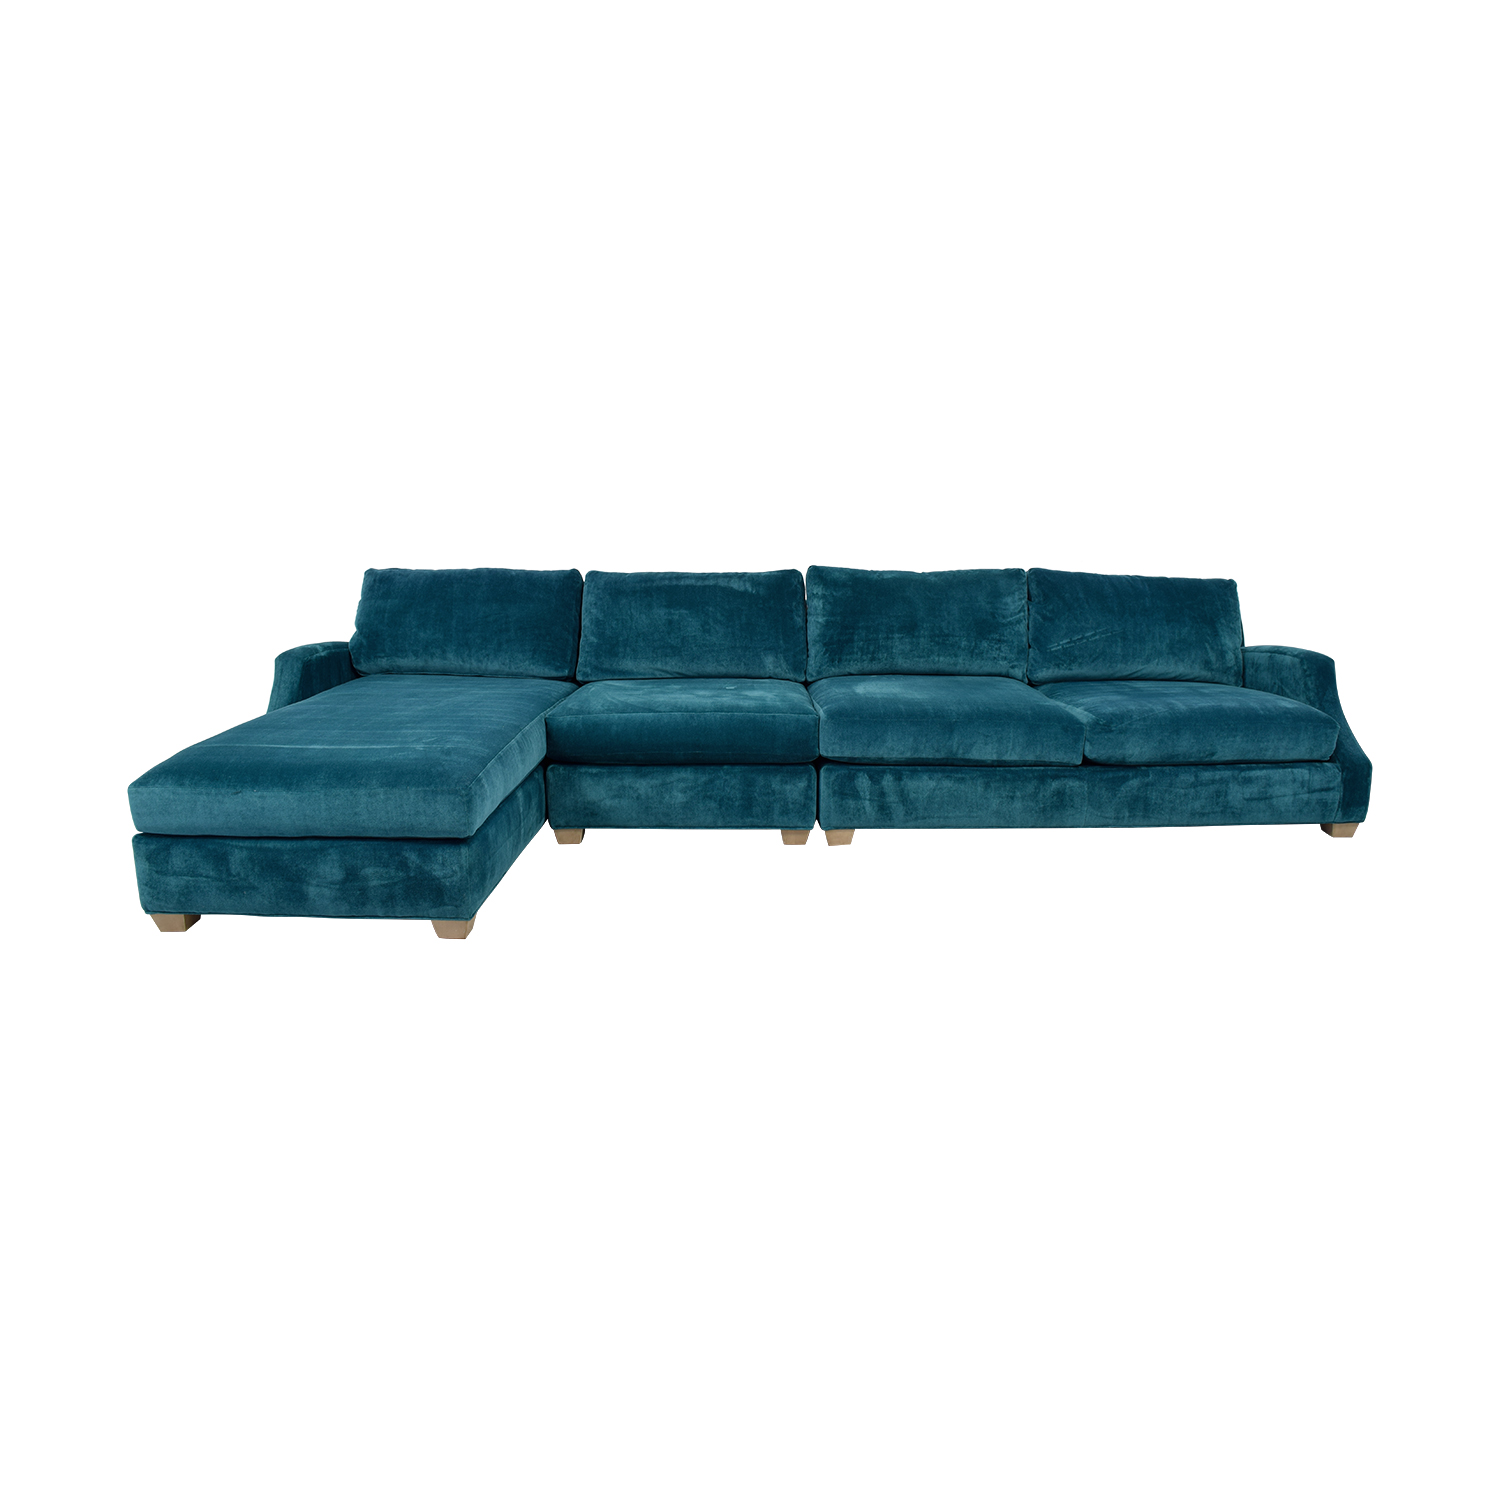 Ethan Allen Ethan Allen Emerald Right Chaise Sectional price